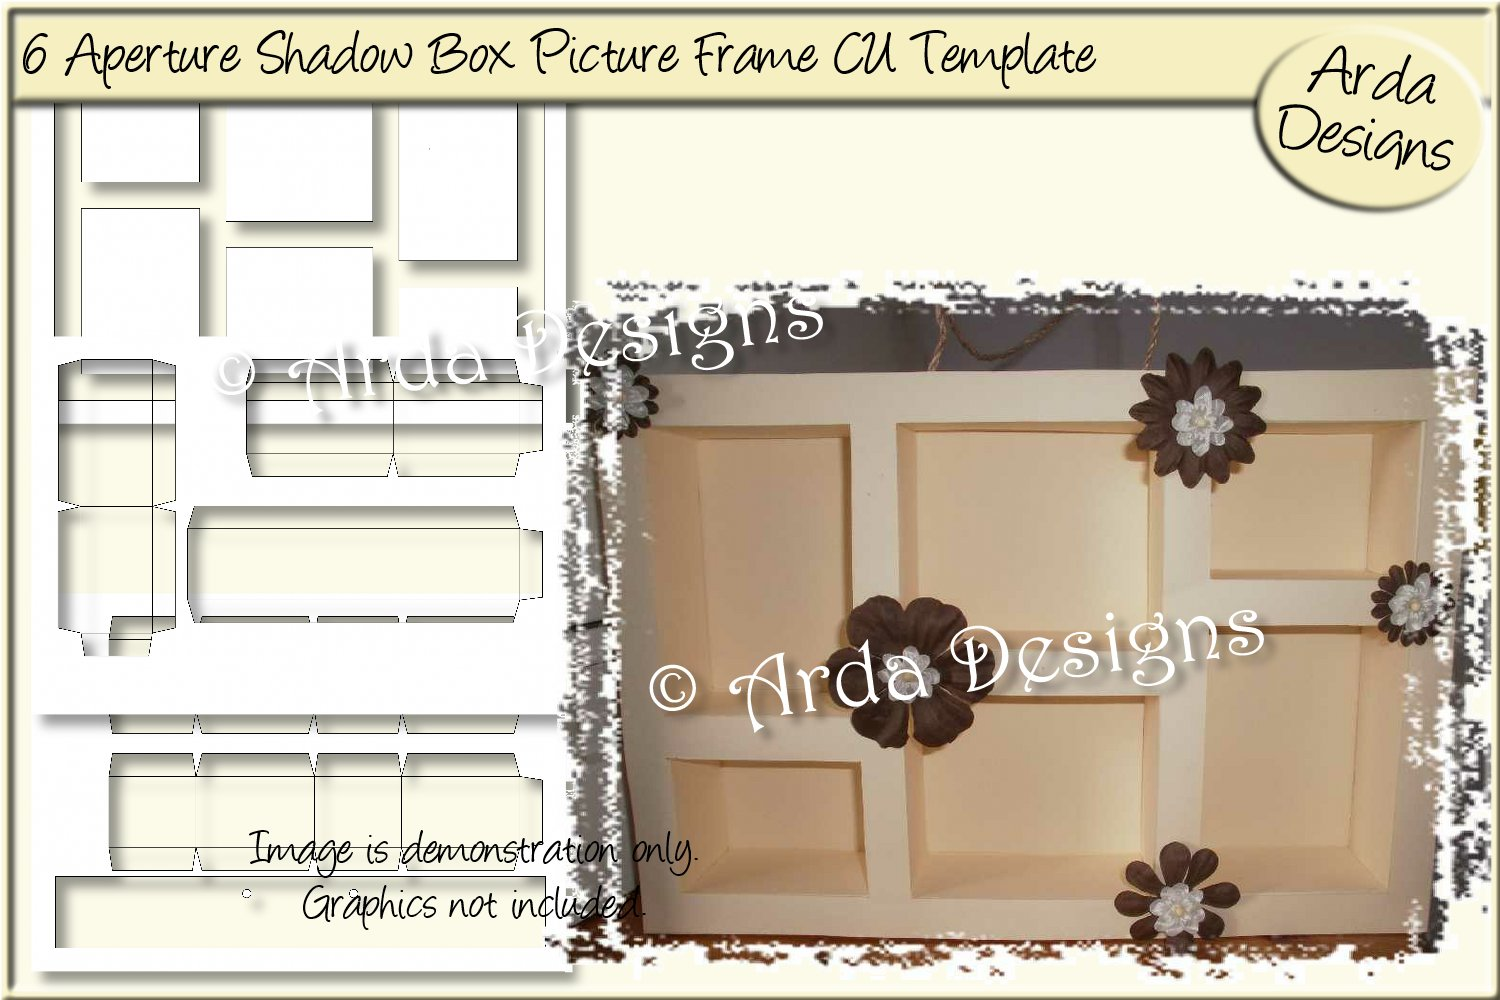 6 Aperture Shadow Box Frame Cu Template Graphic By Arda Designs Creative Fabrica